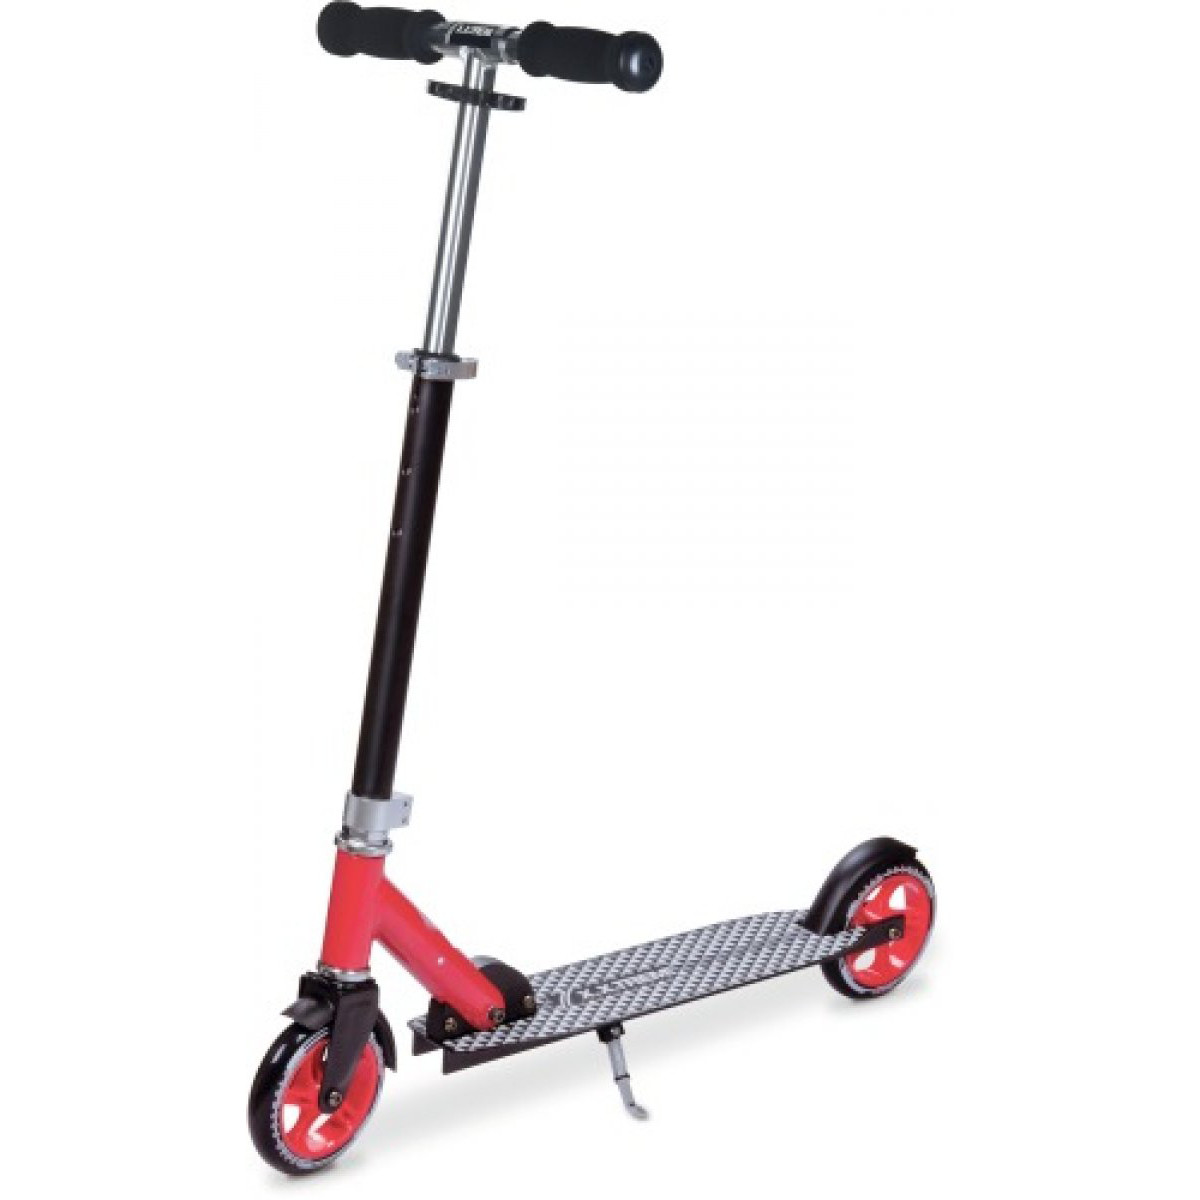 cityroller roller klapproller kinder 145mm xxtreme scooter. Black Bedroom Furniture Sets. Home Design Ideas